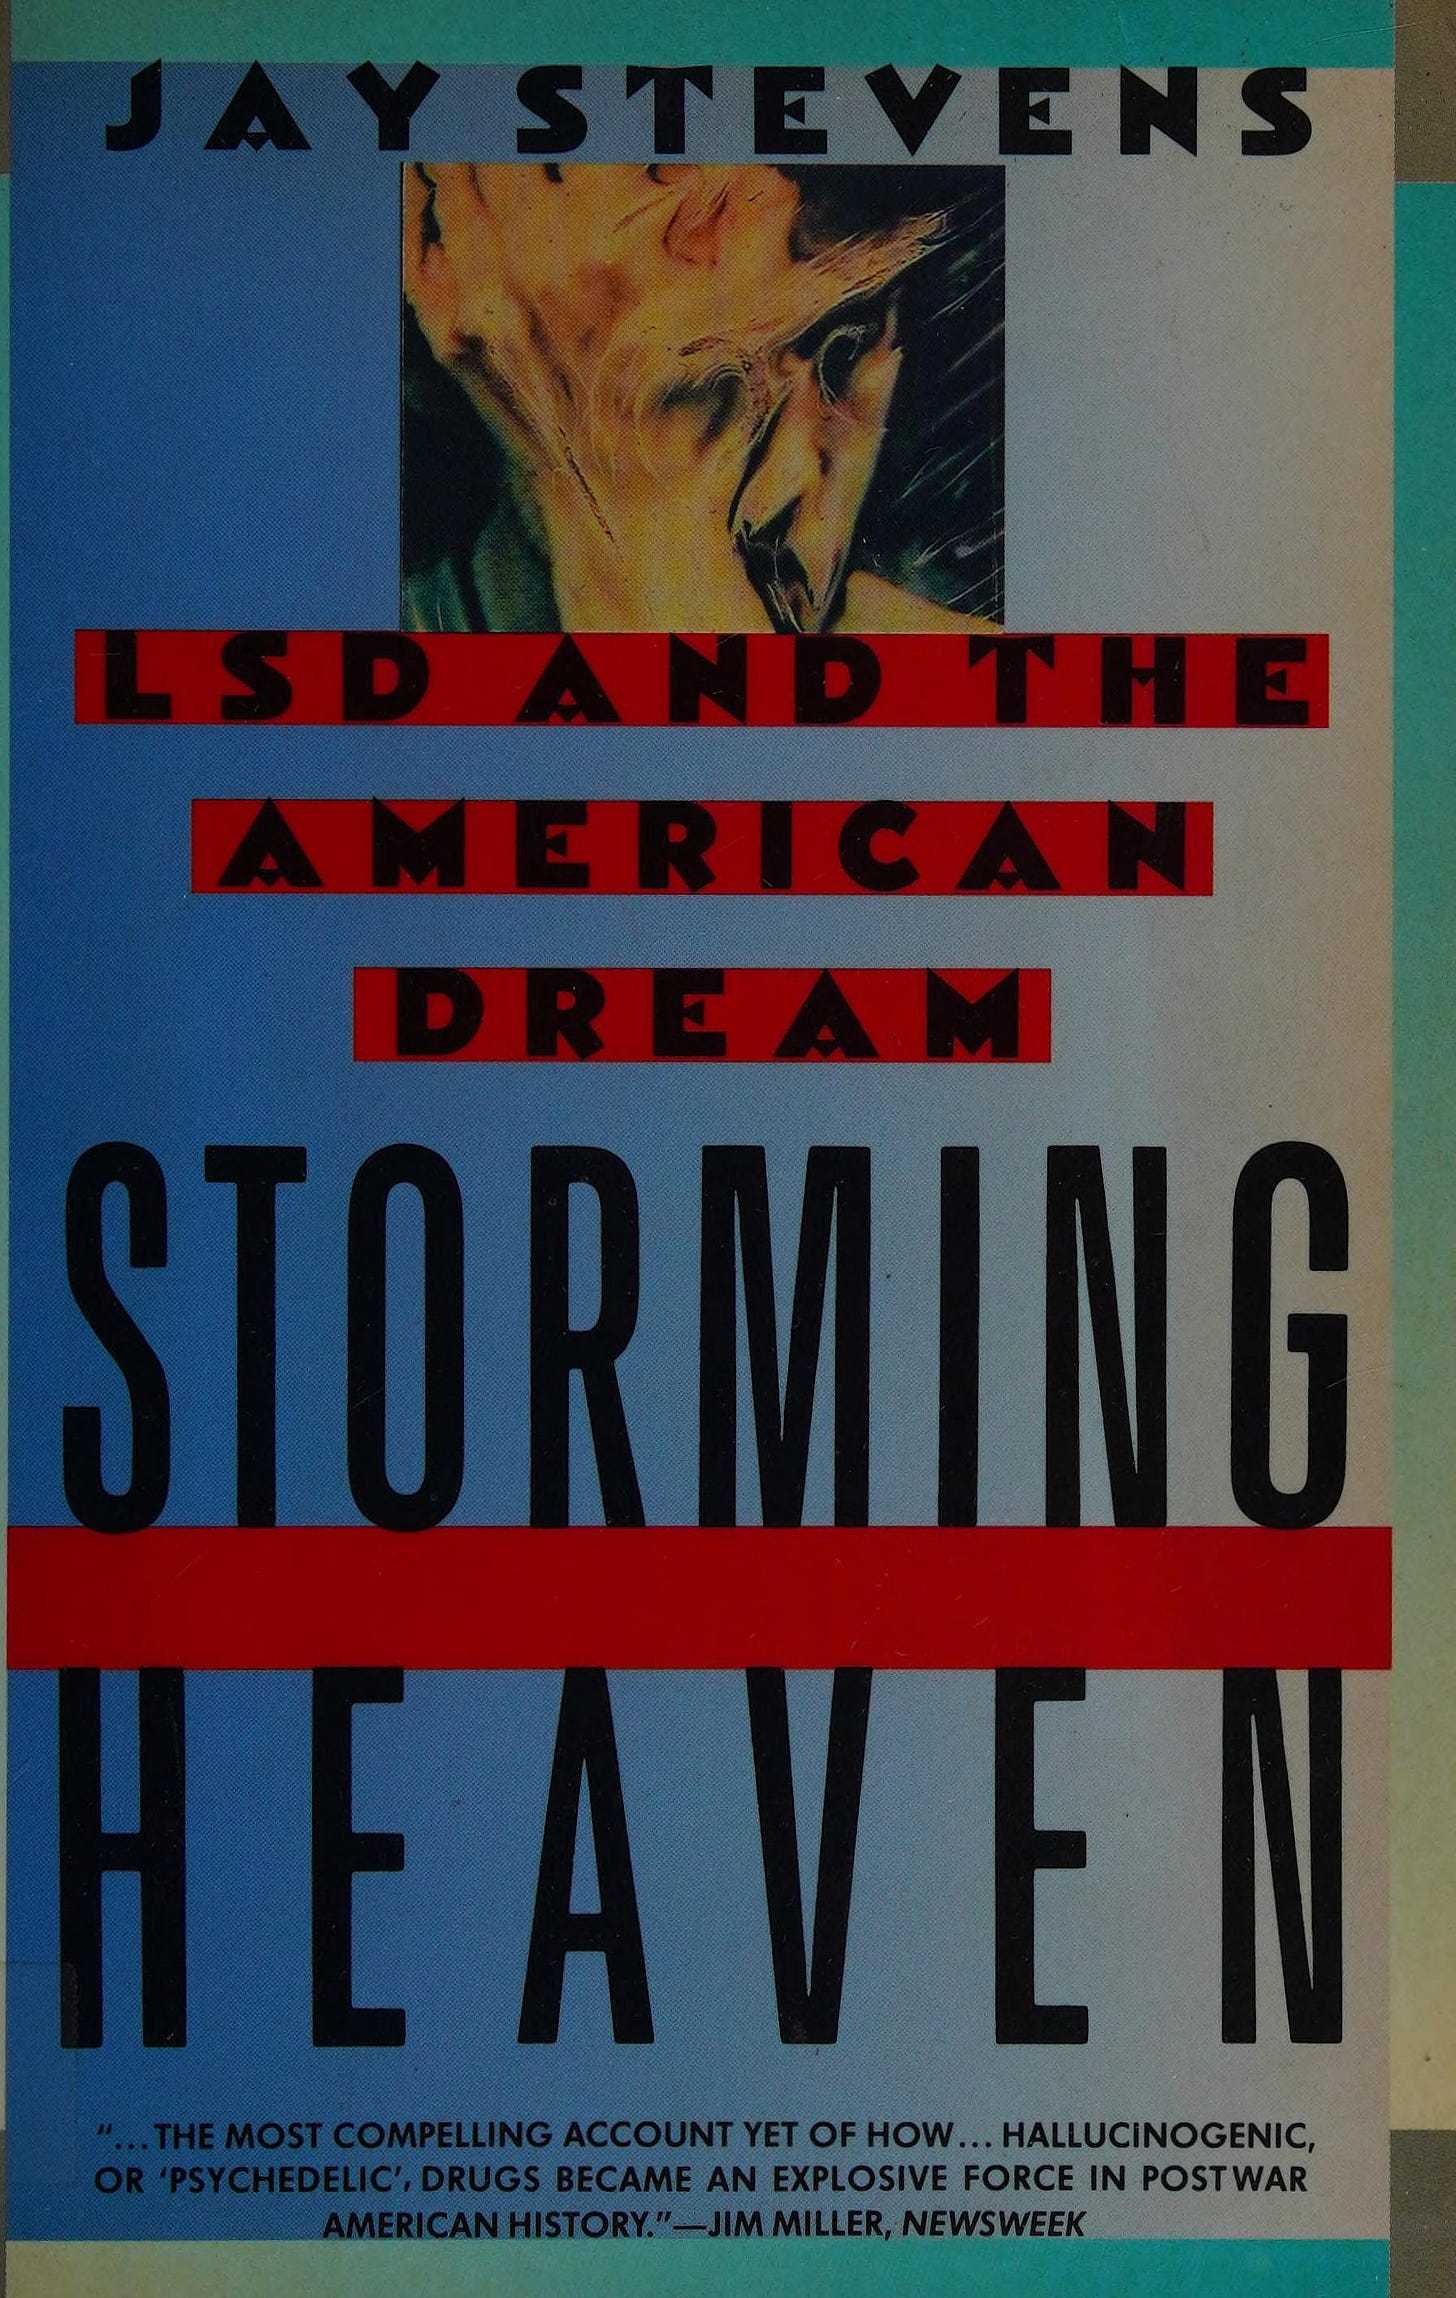 Storming heaven : LSD and the American dream : Stevens, Jay : Free  Download, Borrow, and Streaming : Internet Archive